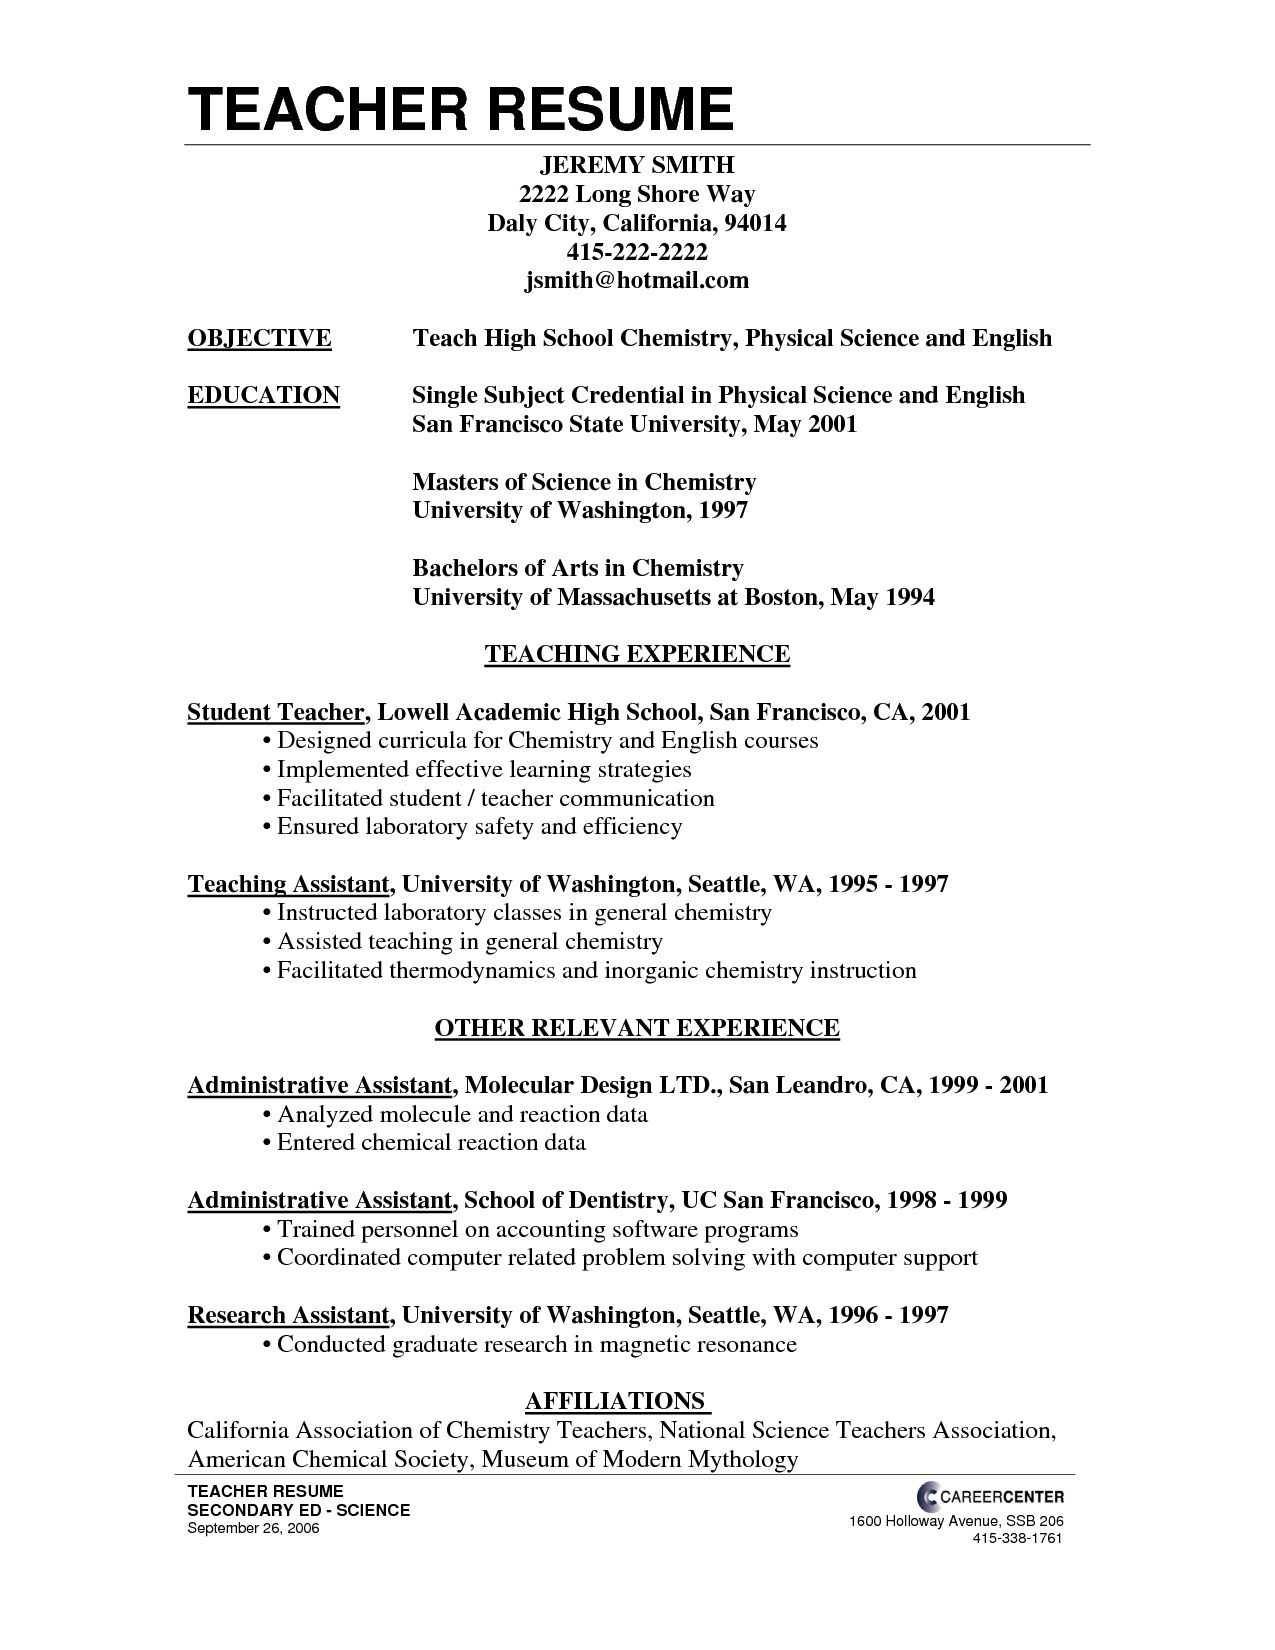 resume Where Can I Find Resumes For Free high school teacher resume getha krisha pinterest mission statement sop proposal objective best free home design idea inspiration